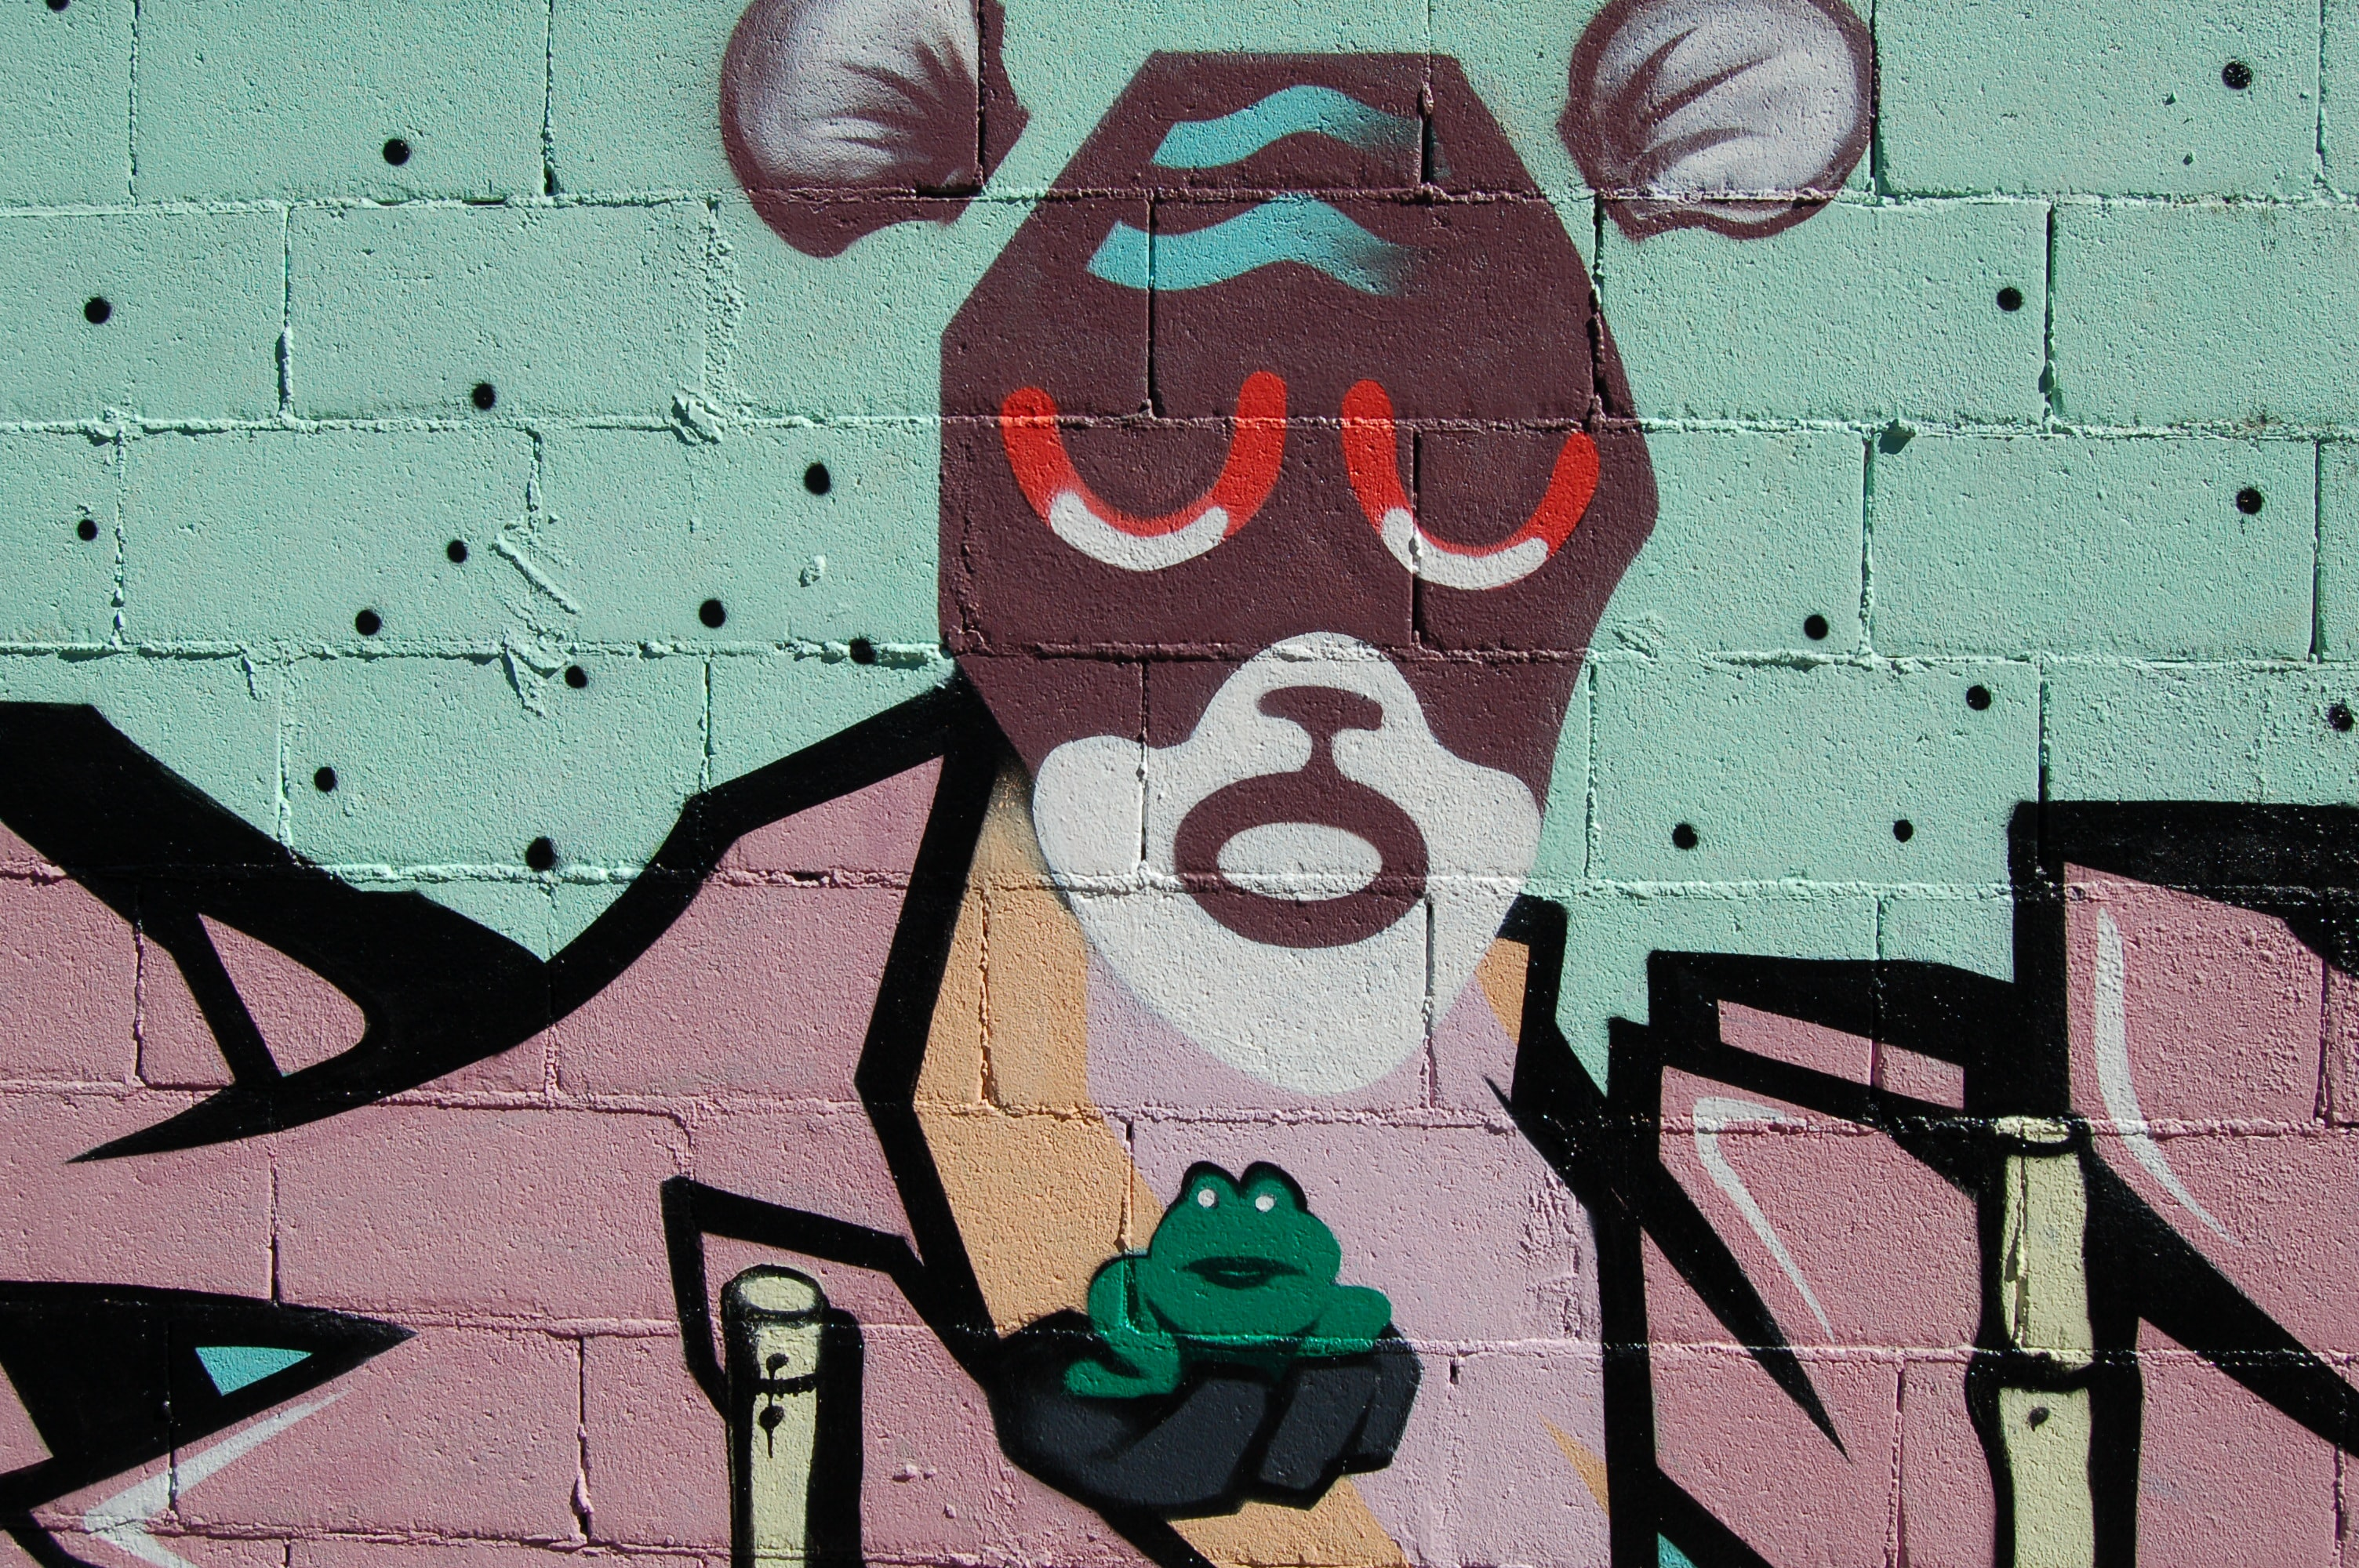 A weird face painted on a wall, holding a frog.